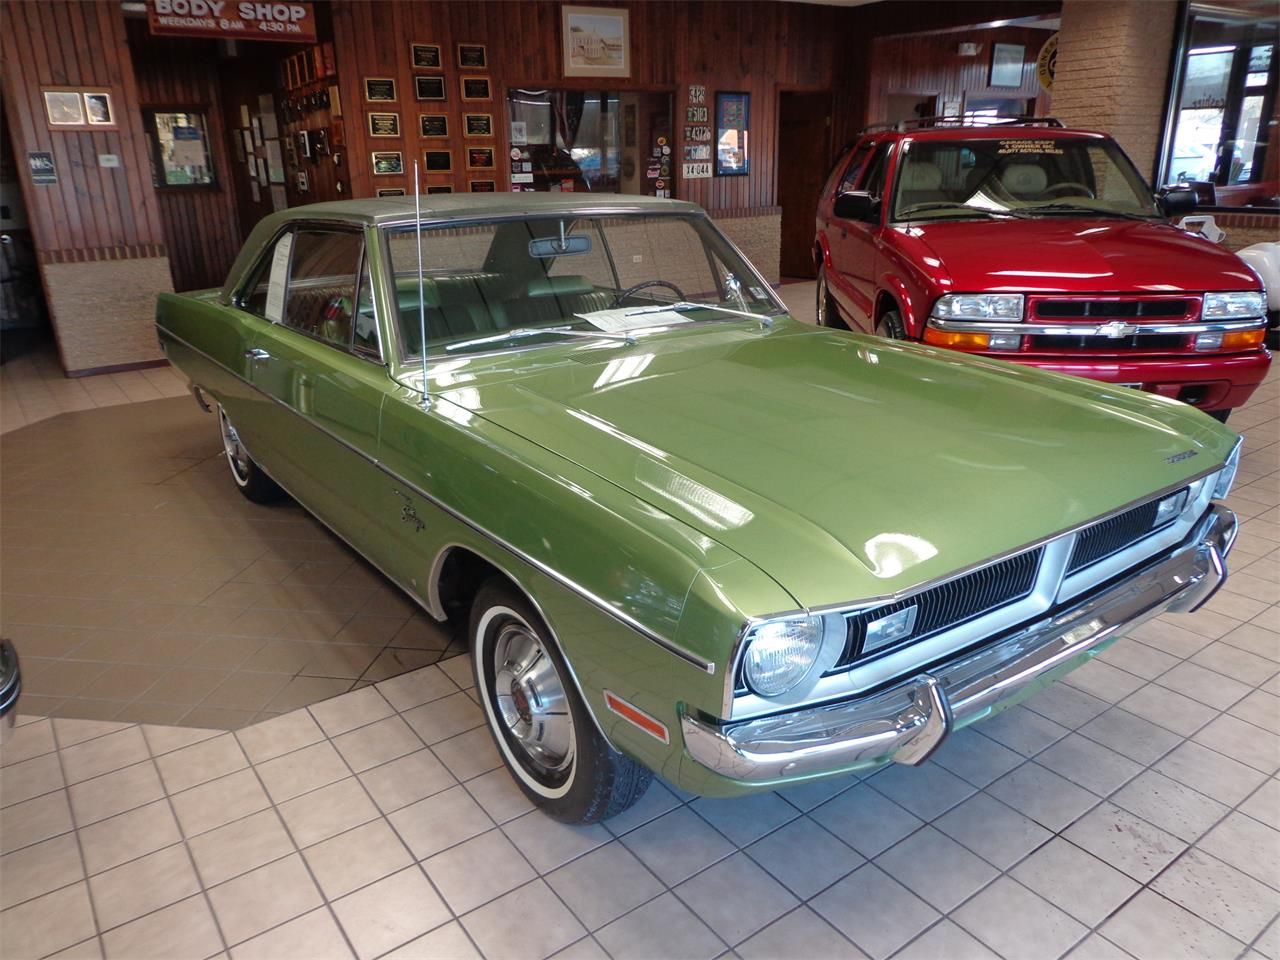 1971 Dodge Dart Swinger for sale in Mill Hall, PA – photo 3